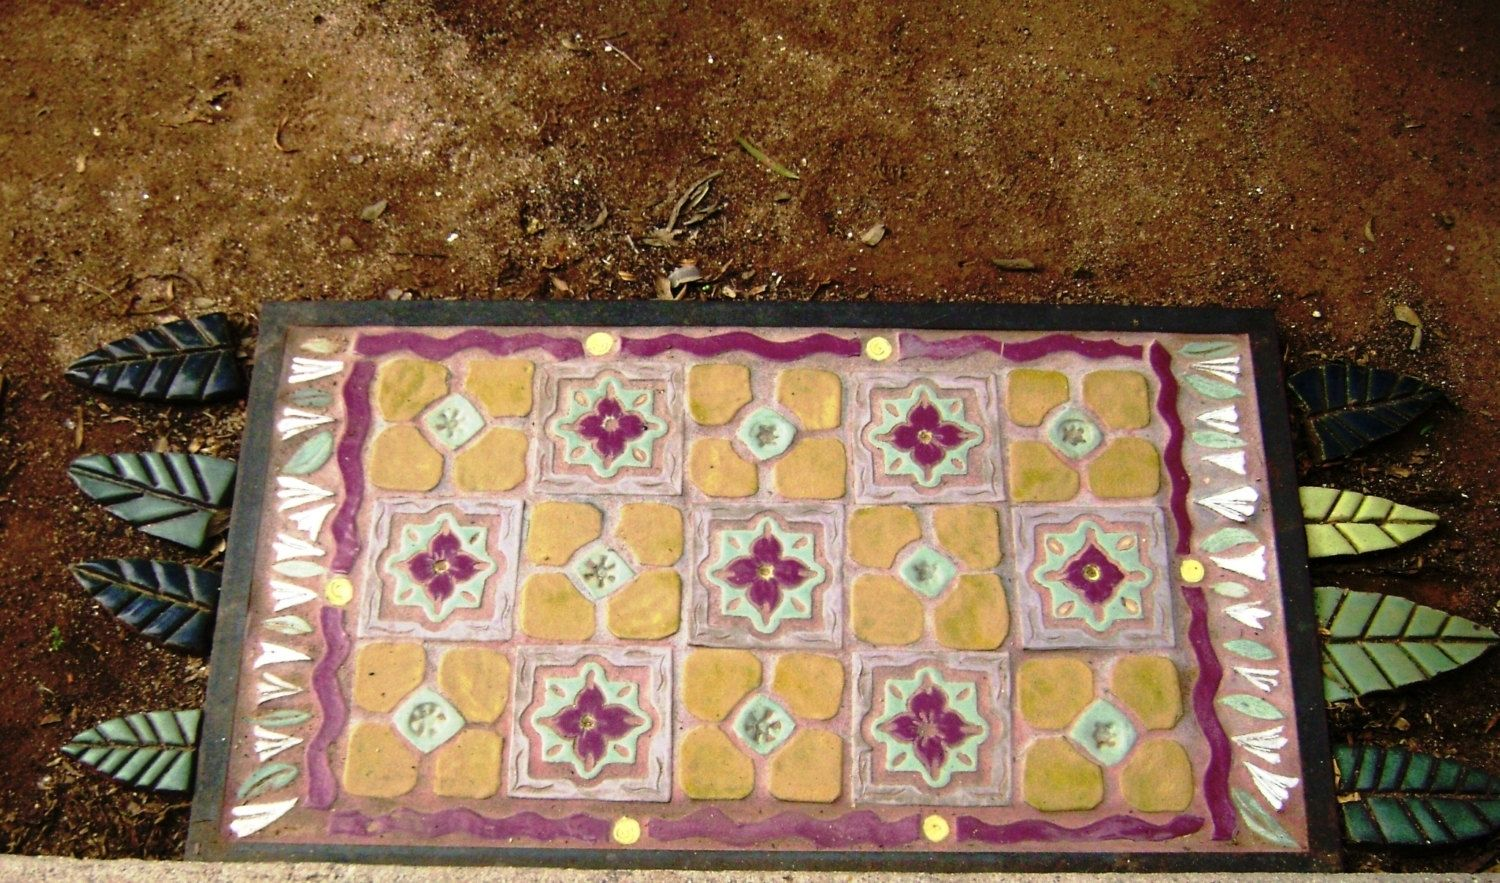 Hand Crafted Magic Carpet Tile Floor Rug Indoors Or Out, Made To ...